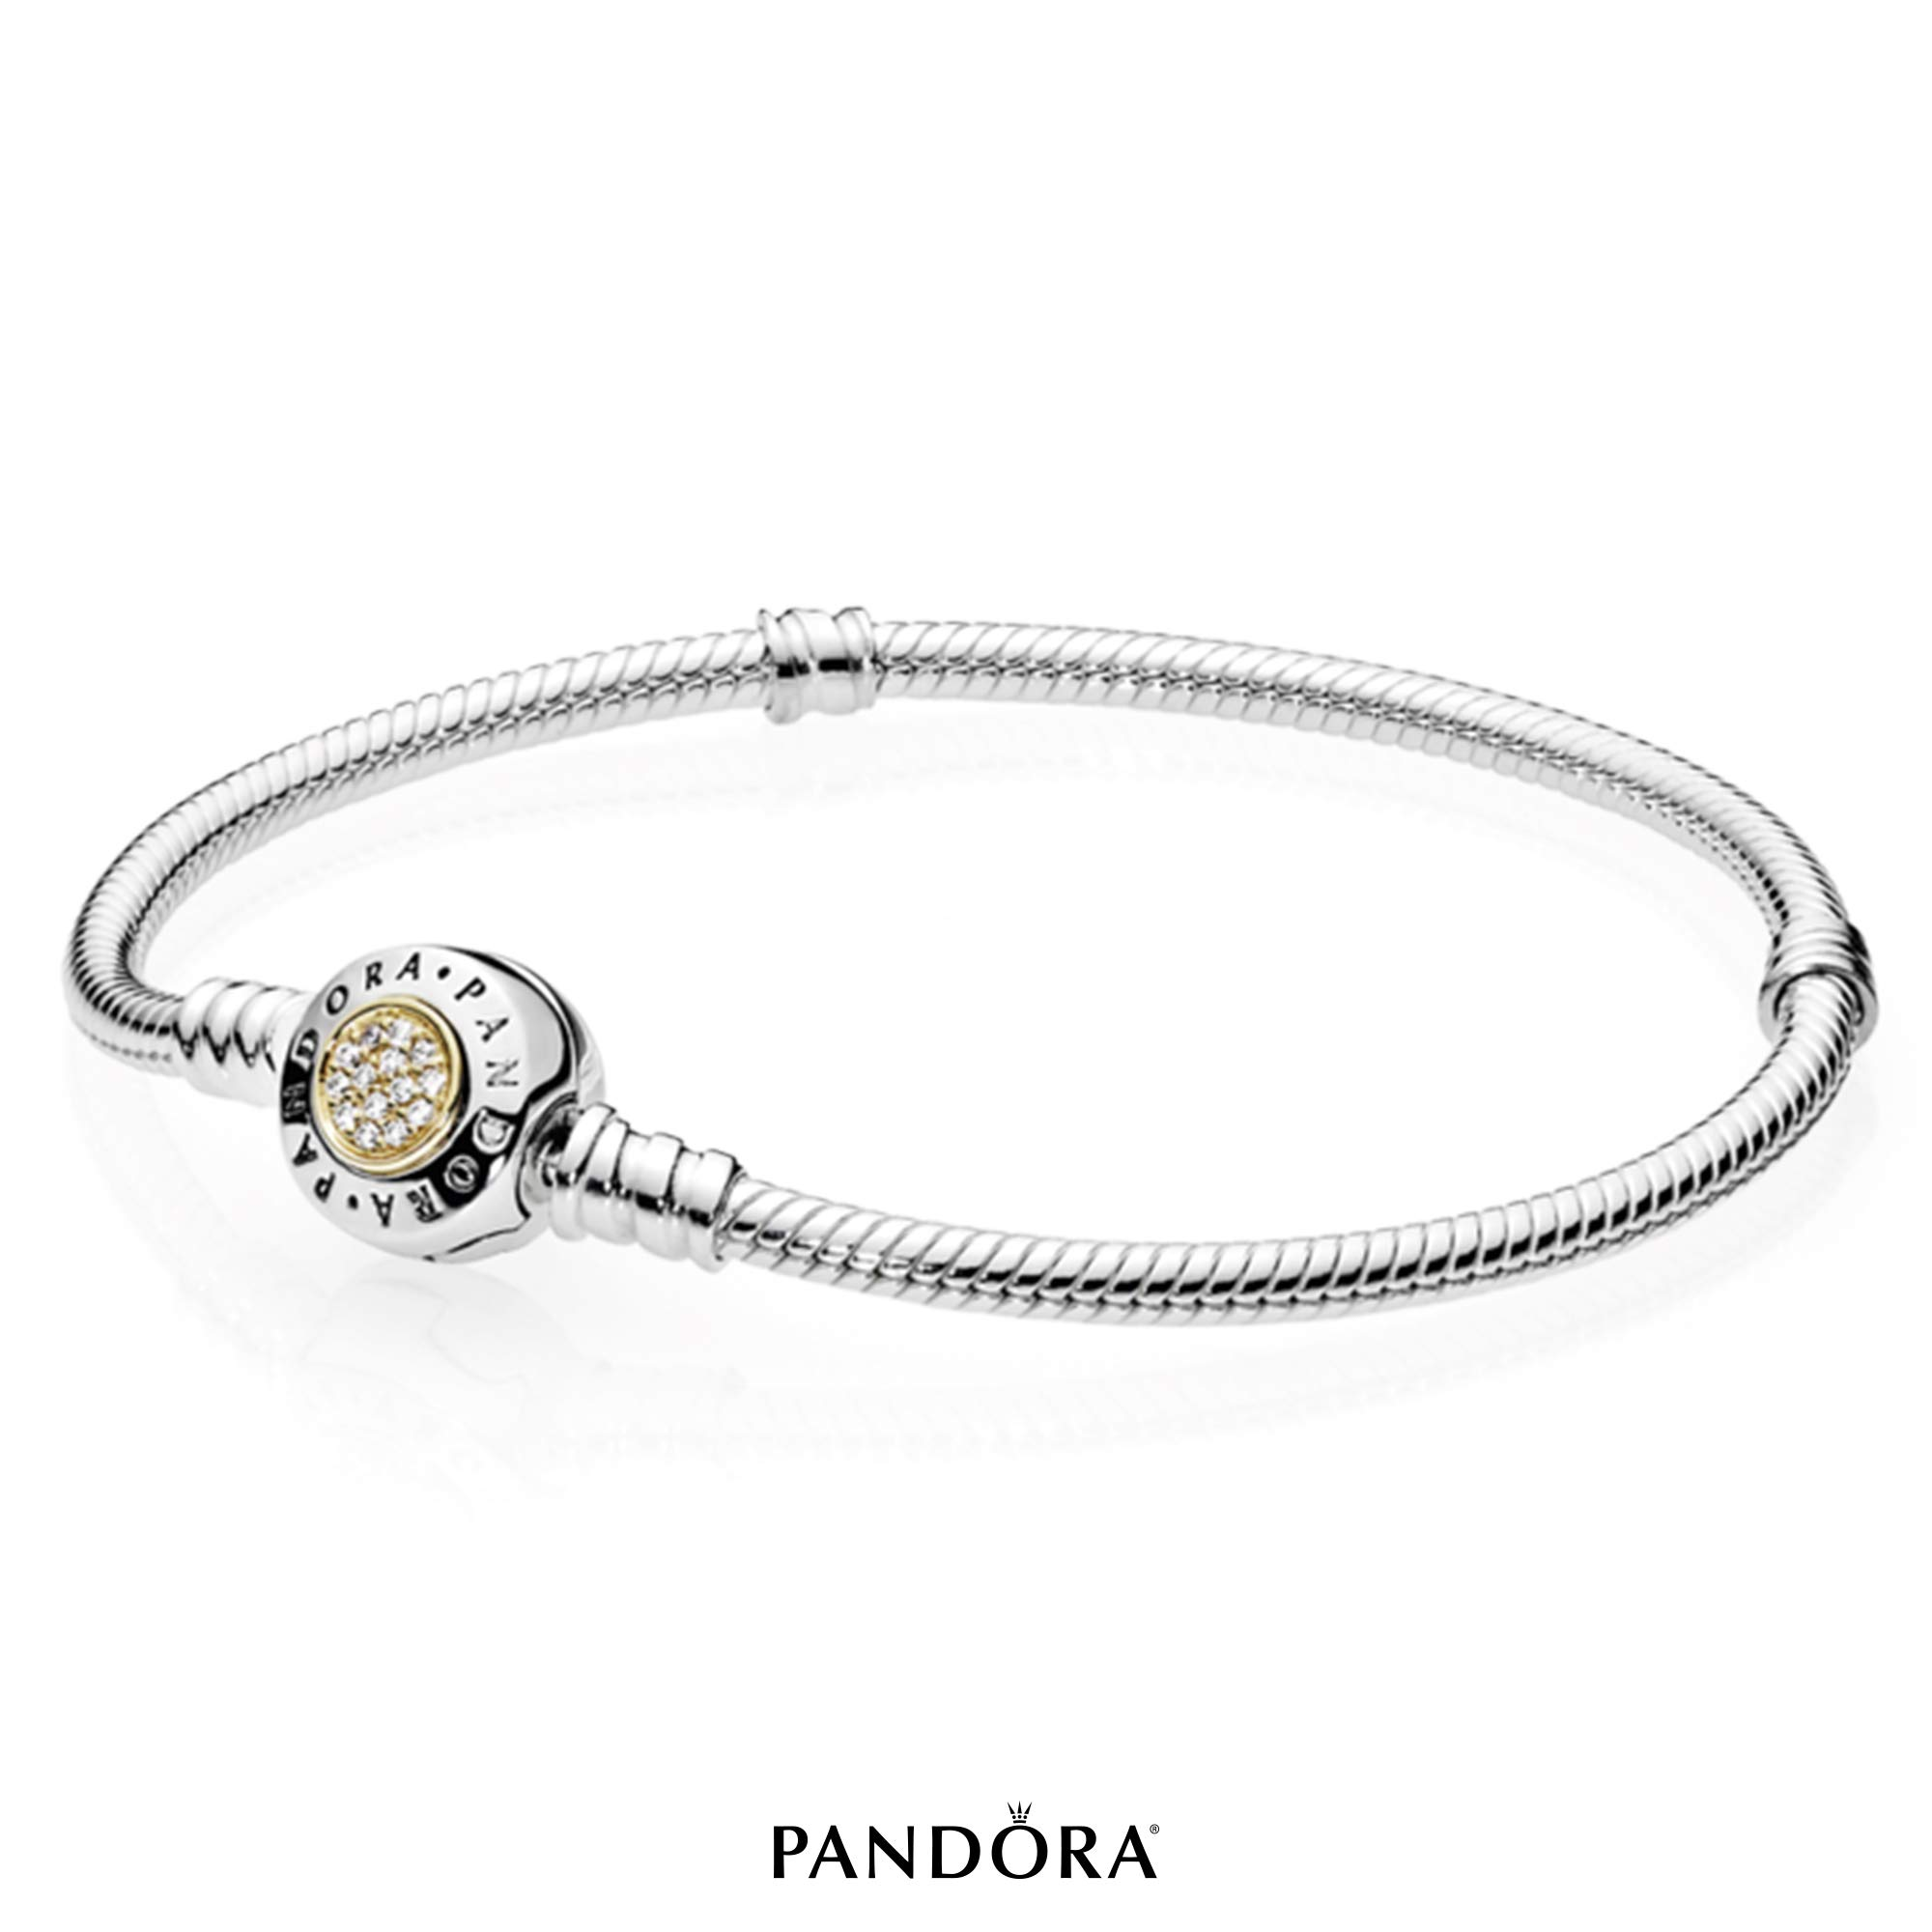 PANDORA Signature Bracelet, Two Tone - Sterling Silver and 14K Yellow Gold, Clear Cubic Zirconia, 7.5 in by PANDORA